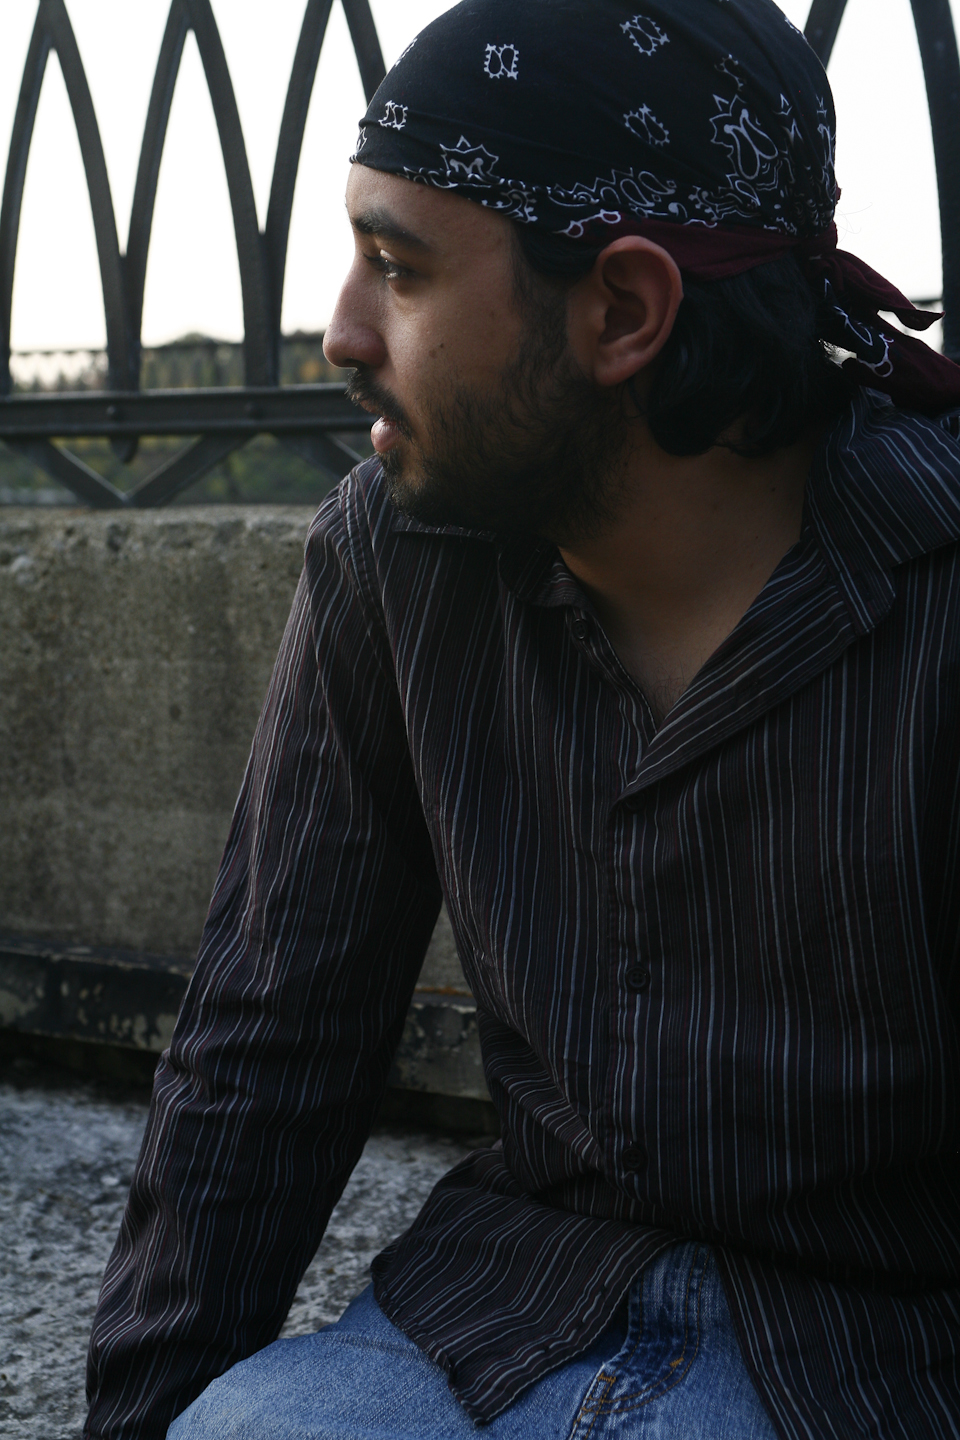 A man sits on a bridge above a river. In the background are trees, a bend in the river, railroad bridge. He is hunched a little forward with his hands resting on the bridge's concrete inner buttress. He is looking away from the viewer, down the length of the bridge, out of the shot. He has a dark, curly beard, and medium brown skin. His expression is contemplative, and as if he just about to speak. He is wearing a blue and white bandanna, a dark-colored shirt with multi-colored stripes, and blue jeans.